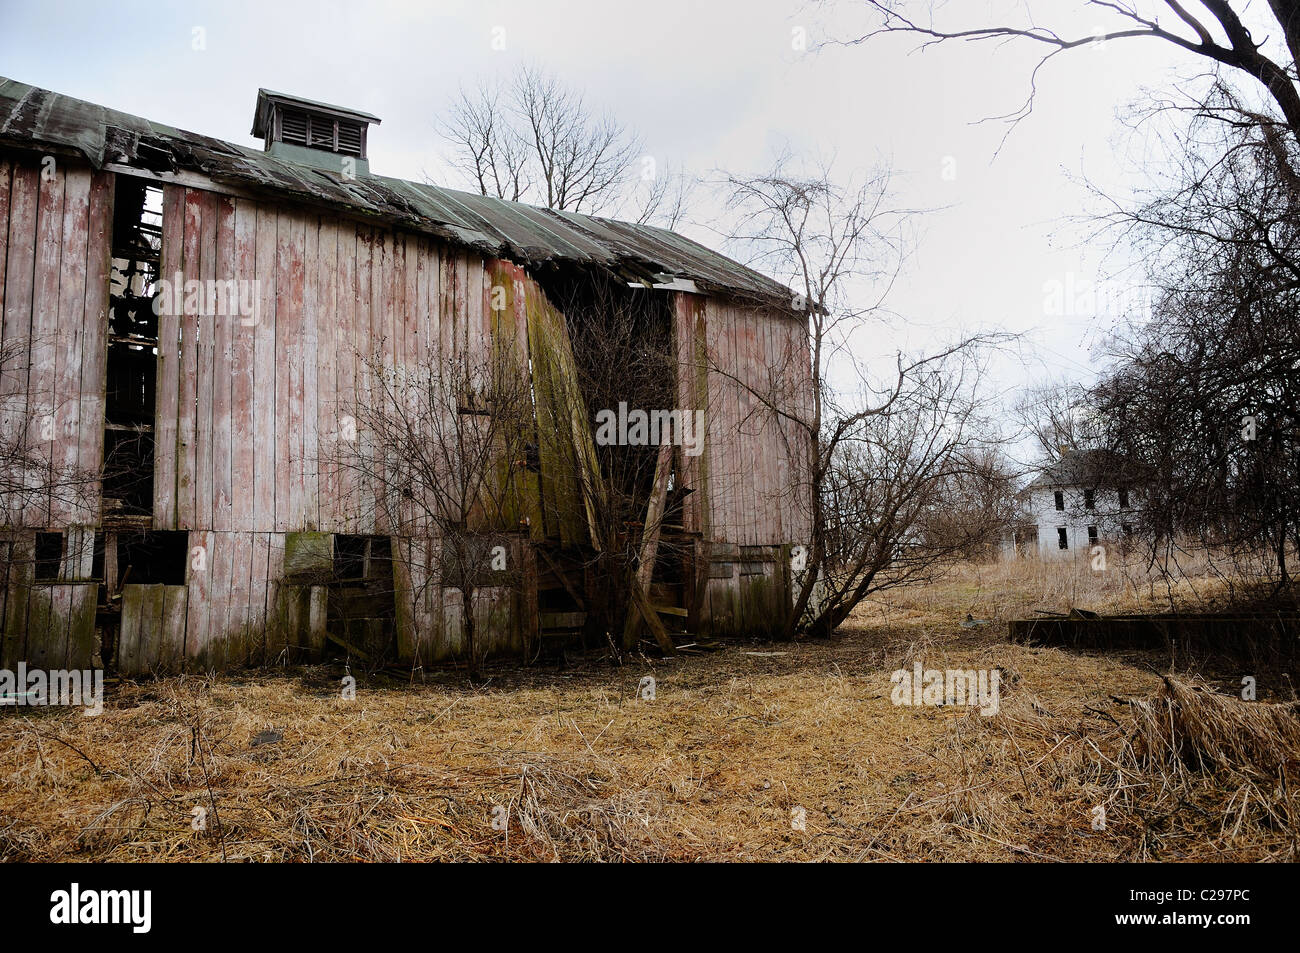 Decaying abandoned barn in Northern Illinois. - Stock Image